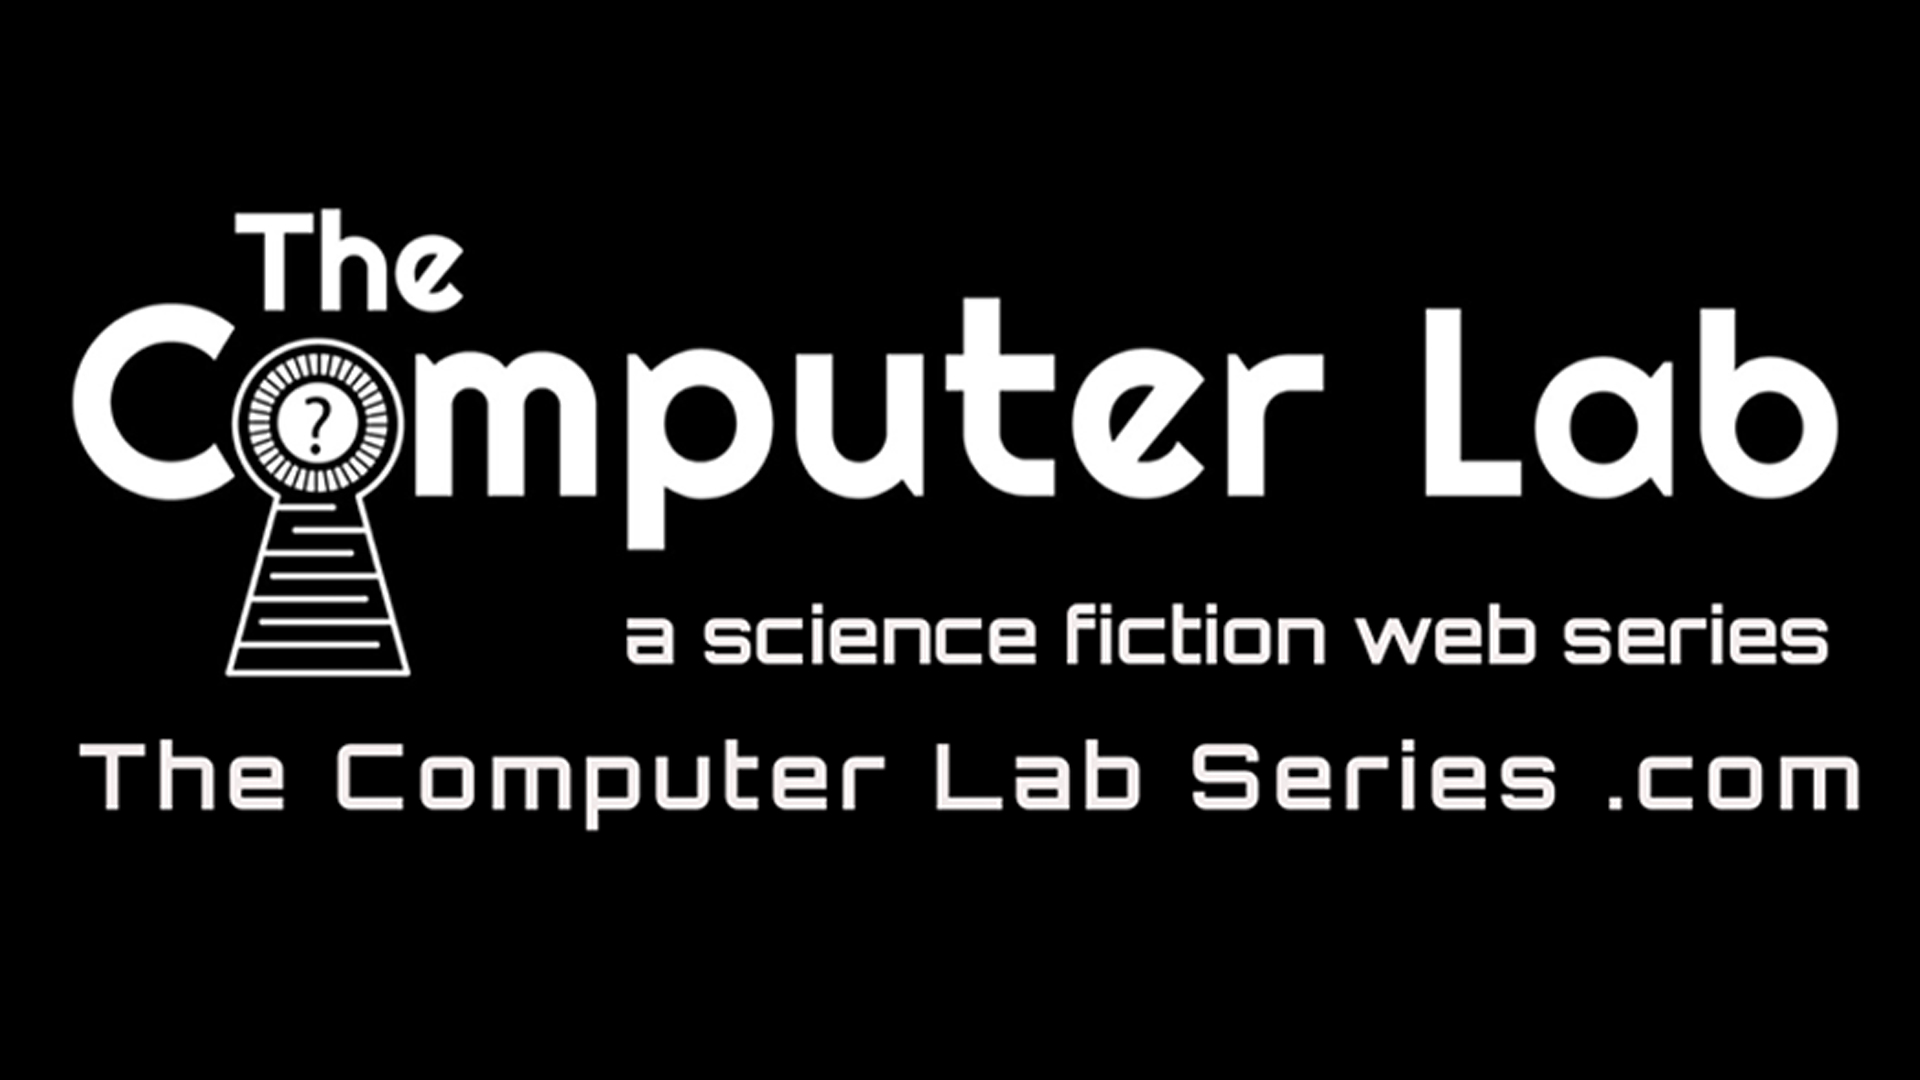 The Computer Lab